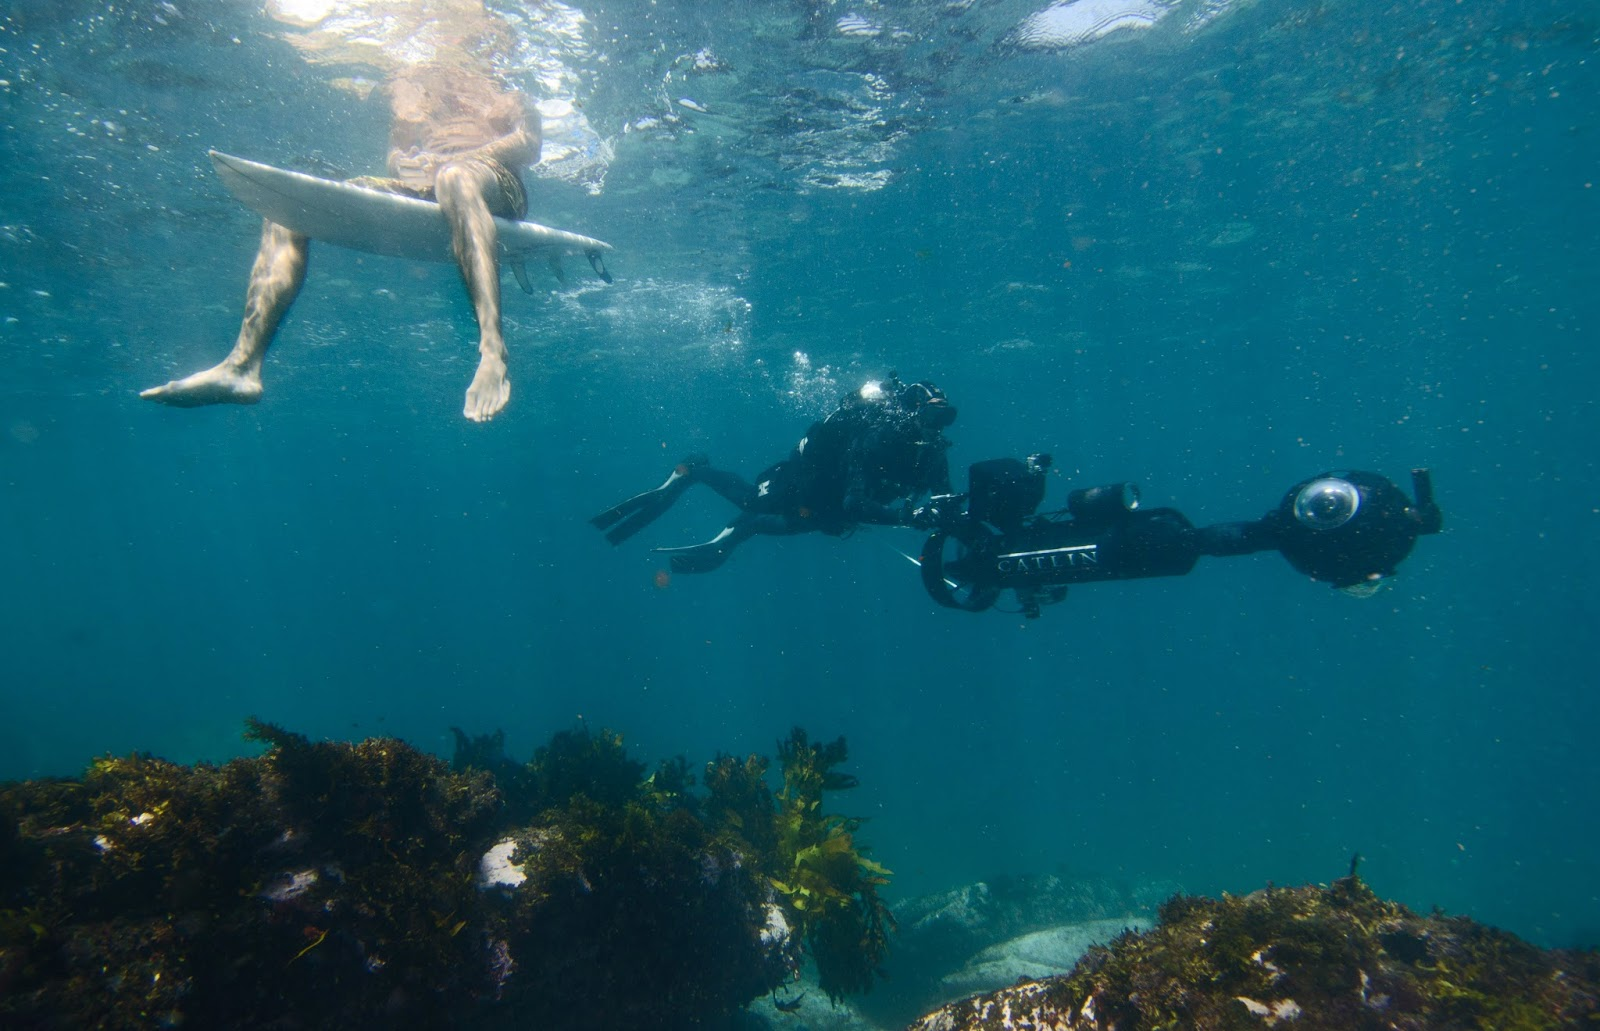 Sydneys underwater world is coming to street view on google maps the project uses catlin seaview surveys 360 degree panoramic svii camera to gather the imagery which will be published to google maps later this year gumiabroncs Image collections